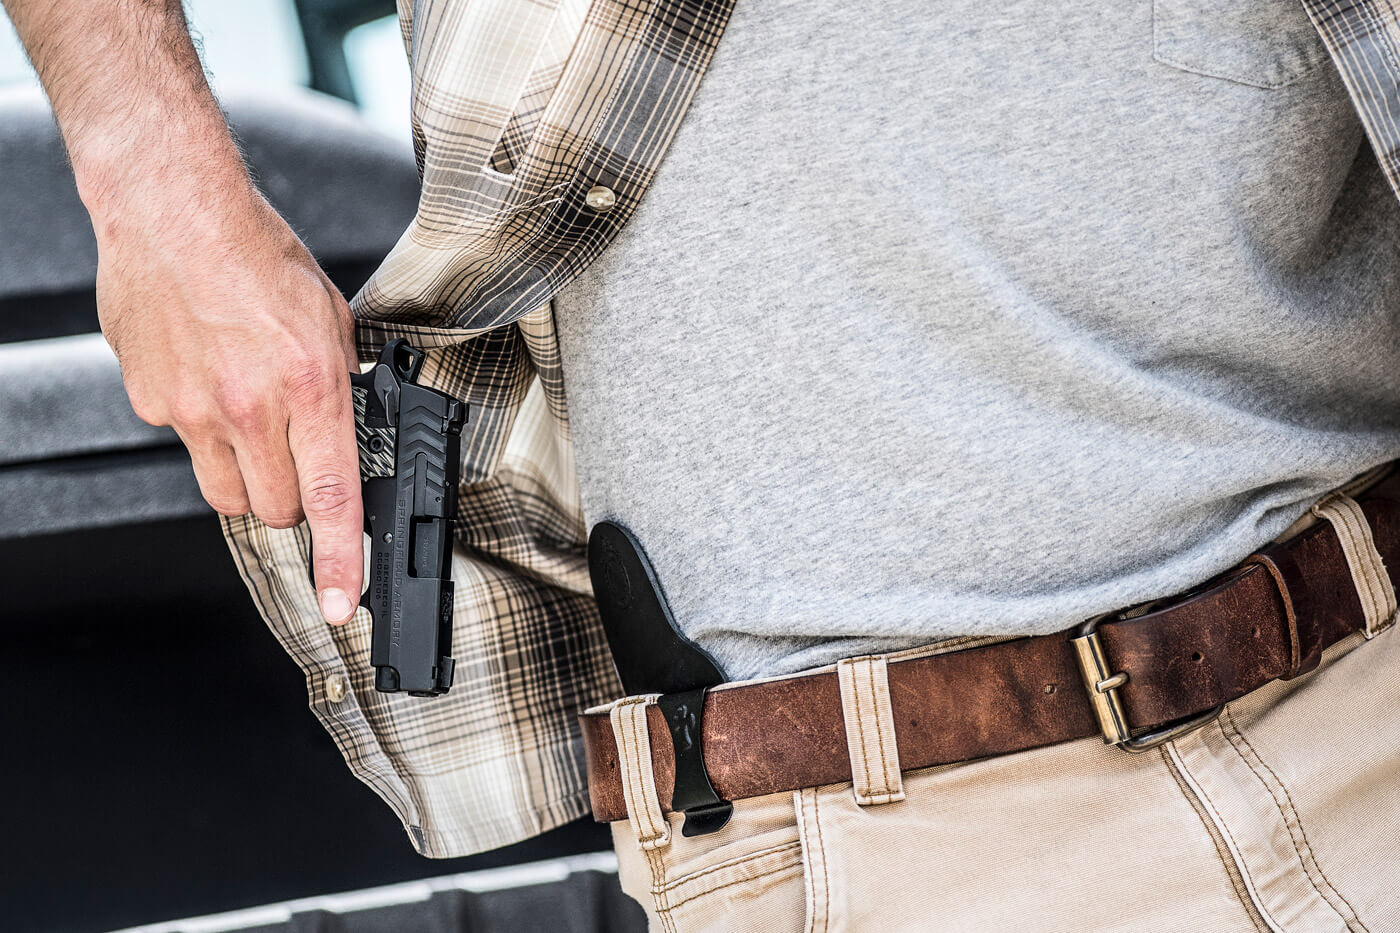 Drawing the Springfield 911 from a Crossbreed Holster